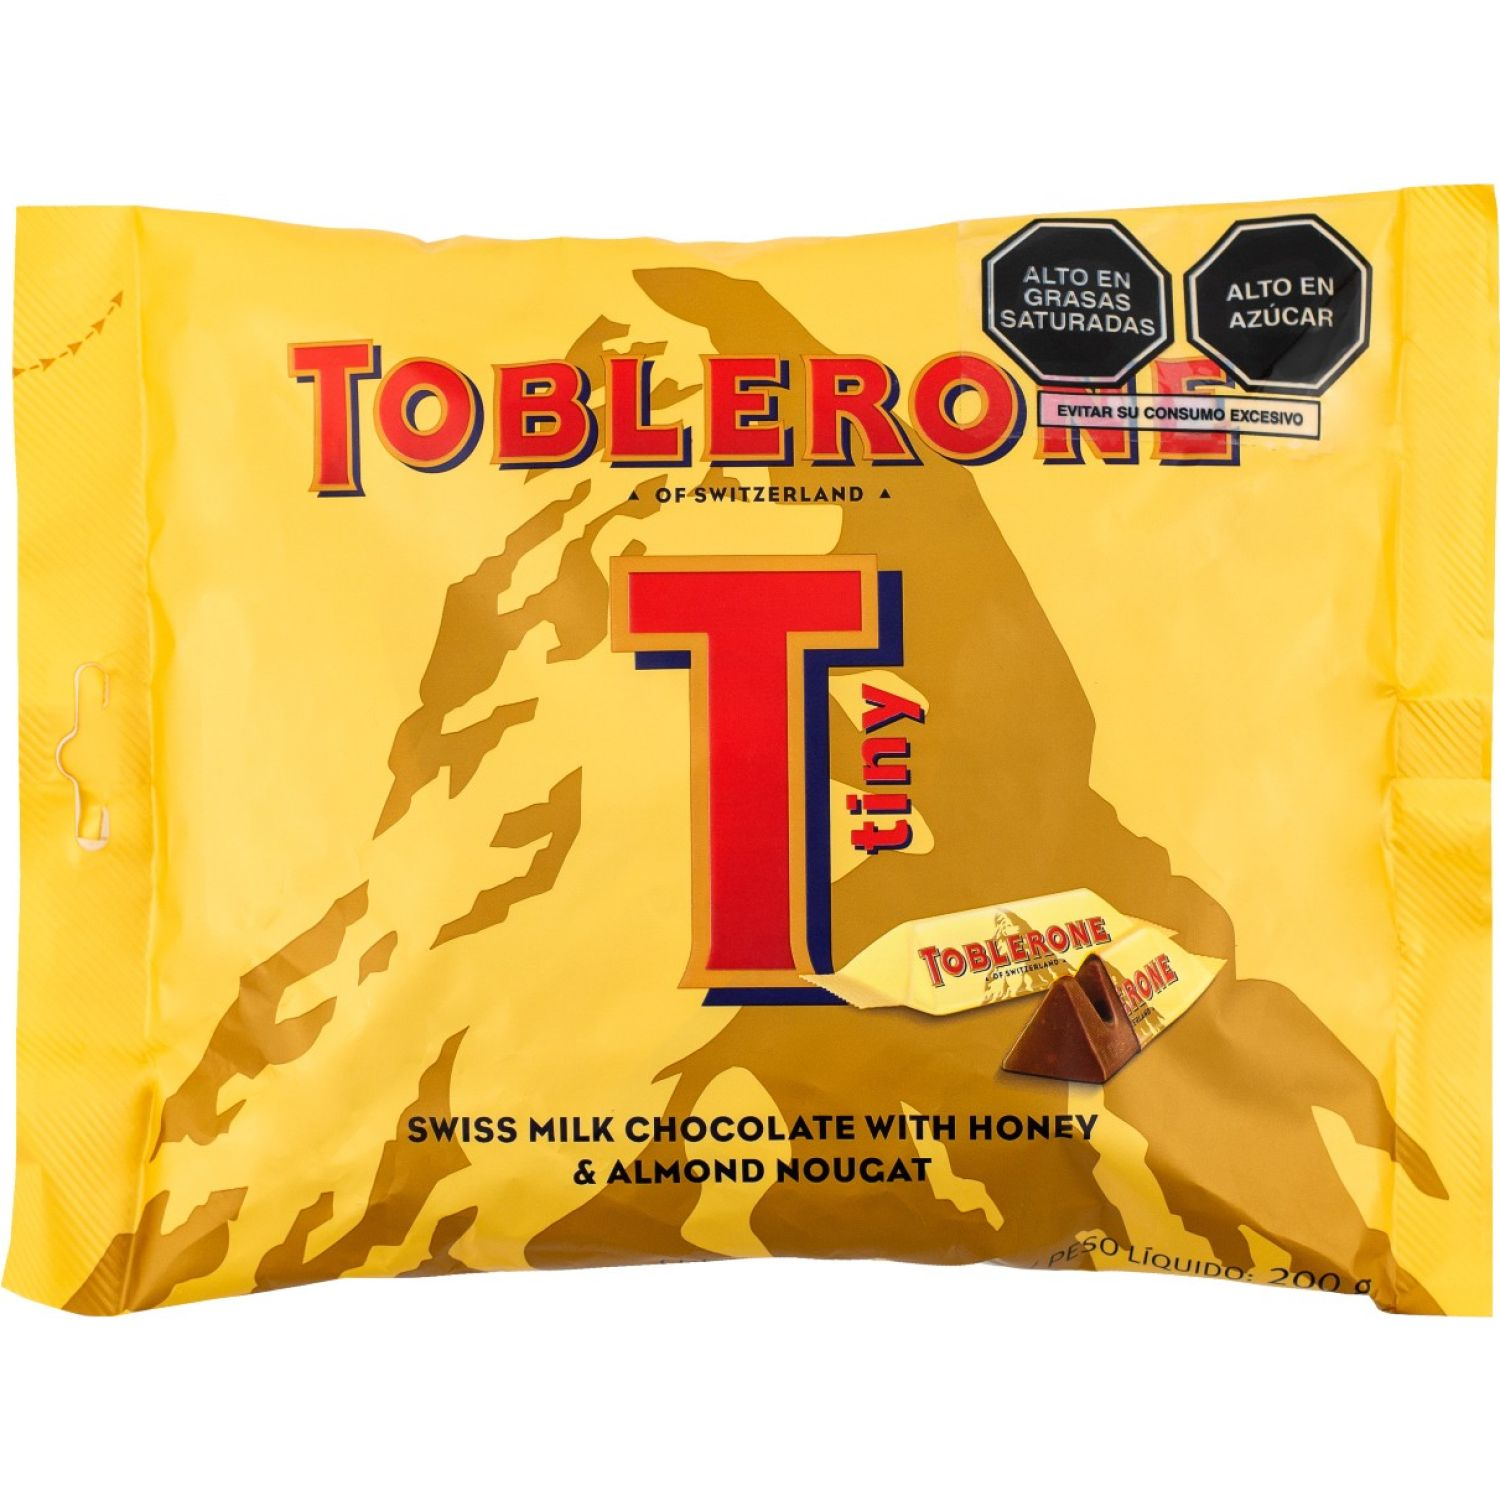 Toblerone Toblerone Tiny Milk 200g Sin color Surtidos de dulces y chocolate